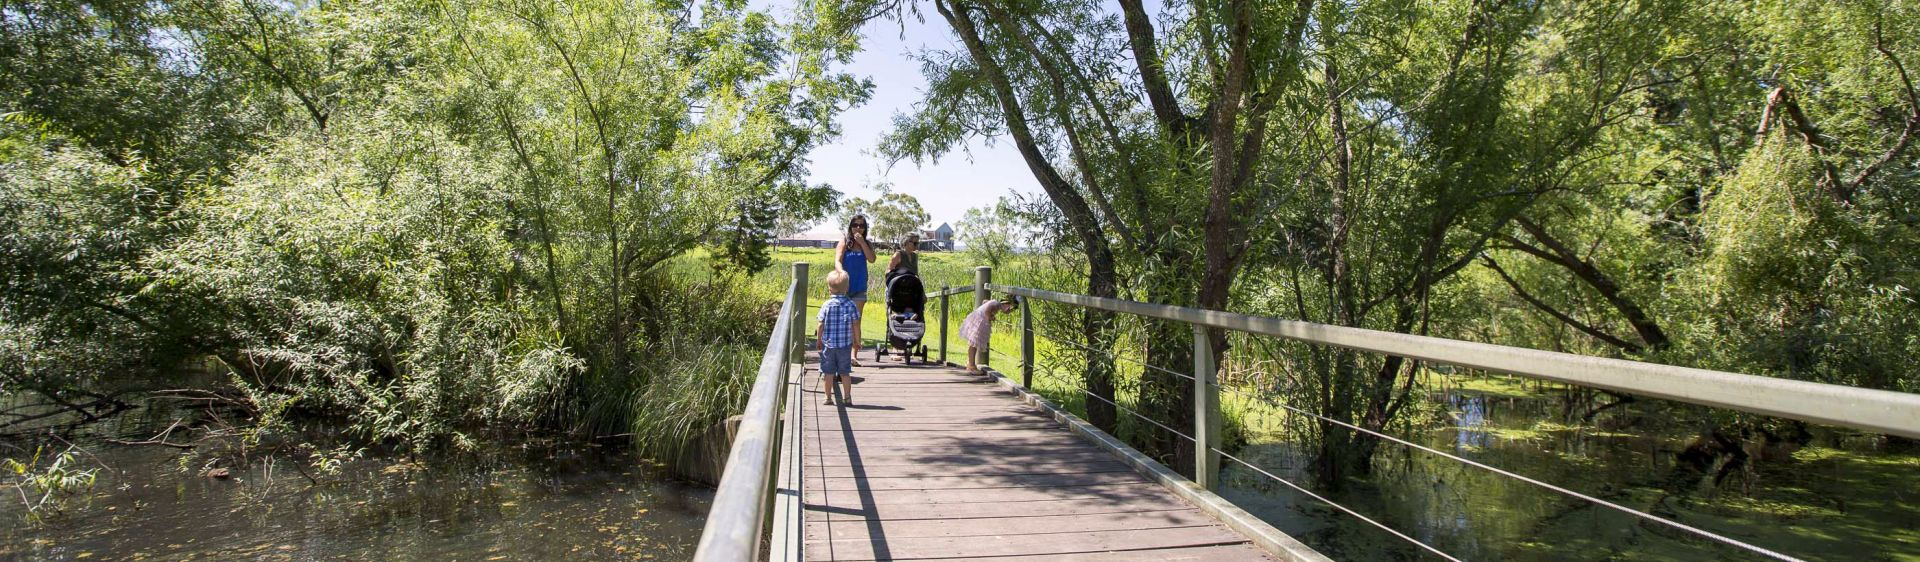 Family enjoying the Hunter River near Maitland, in the NSW Hunter region